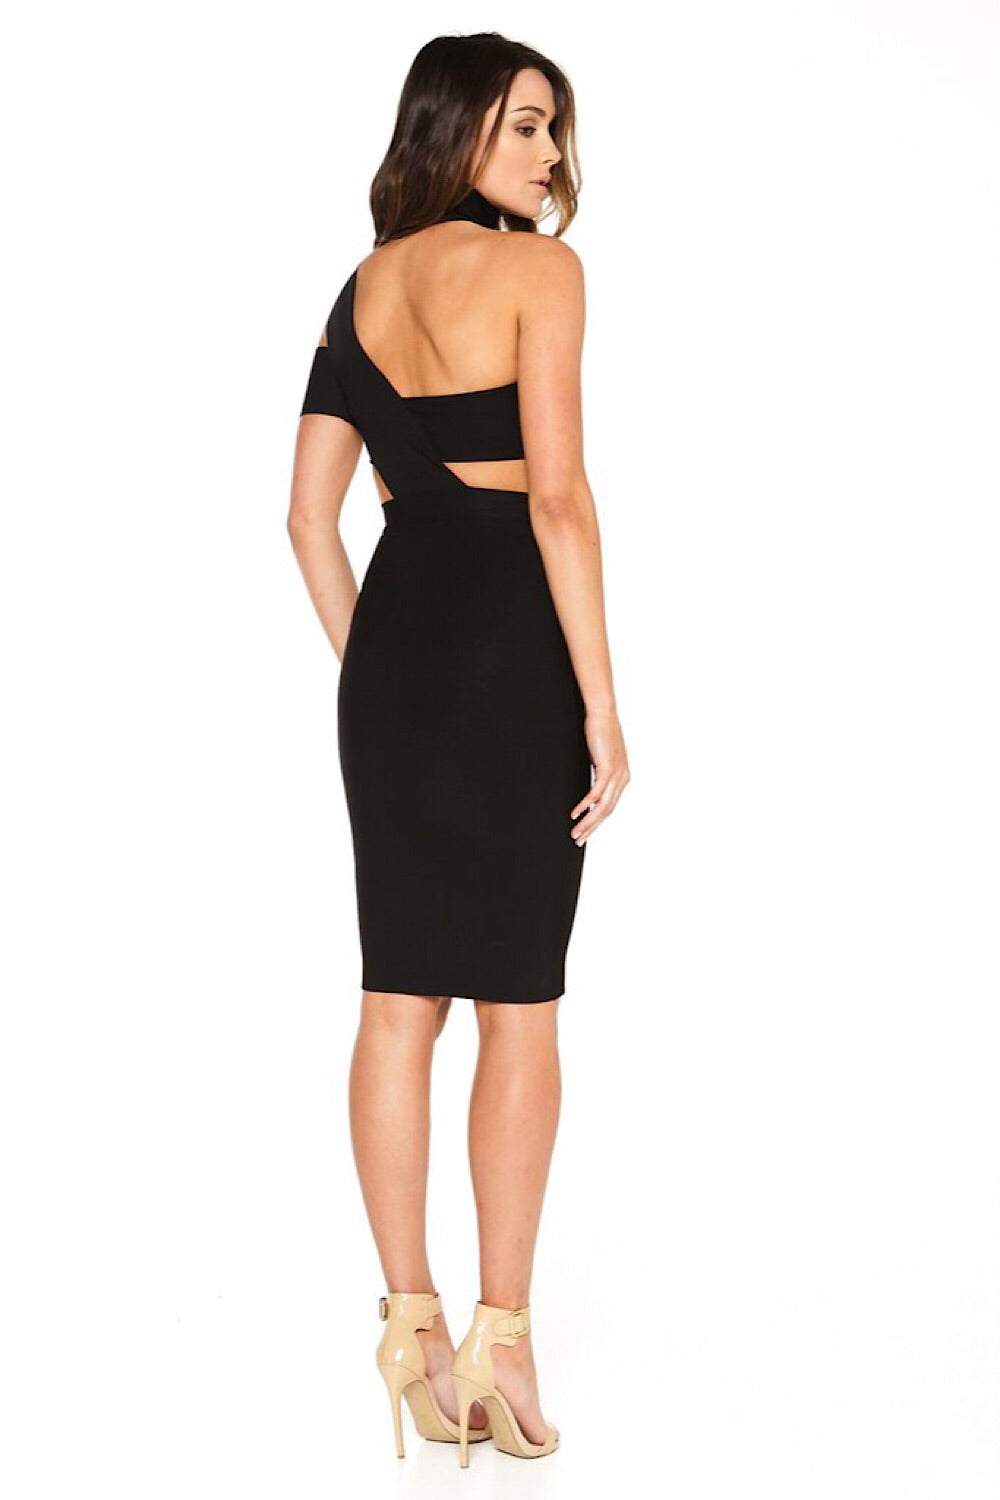 Vienna Black Bandage Dress